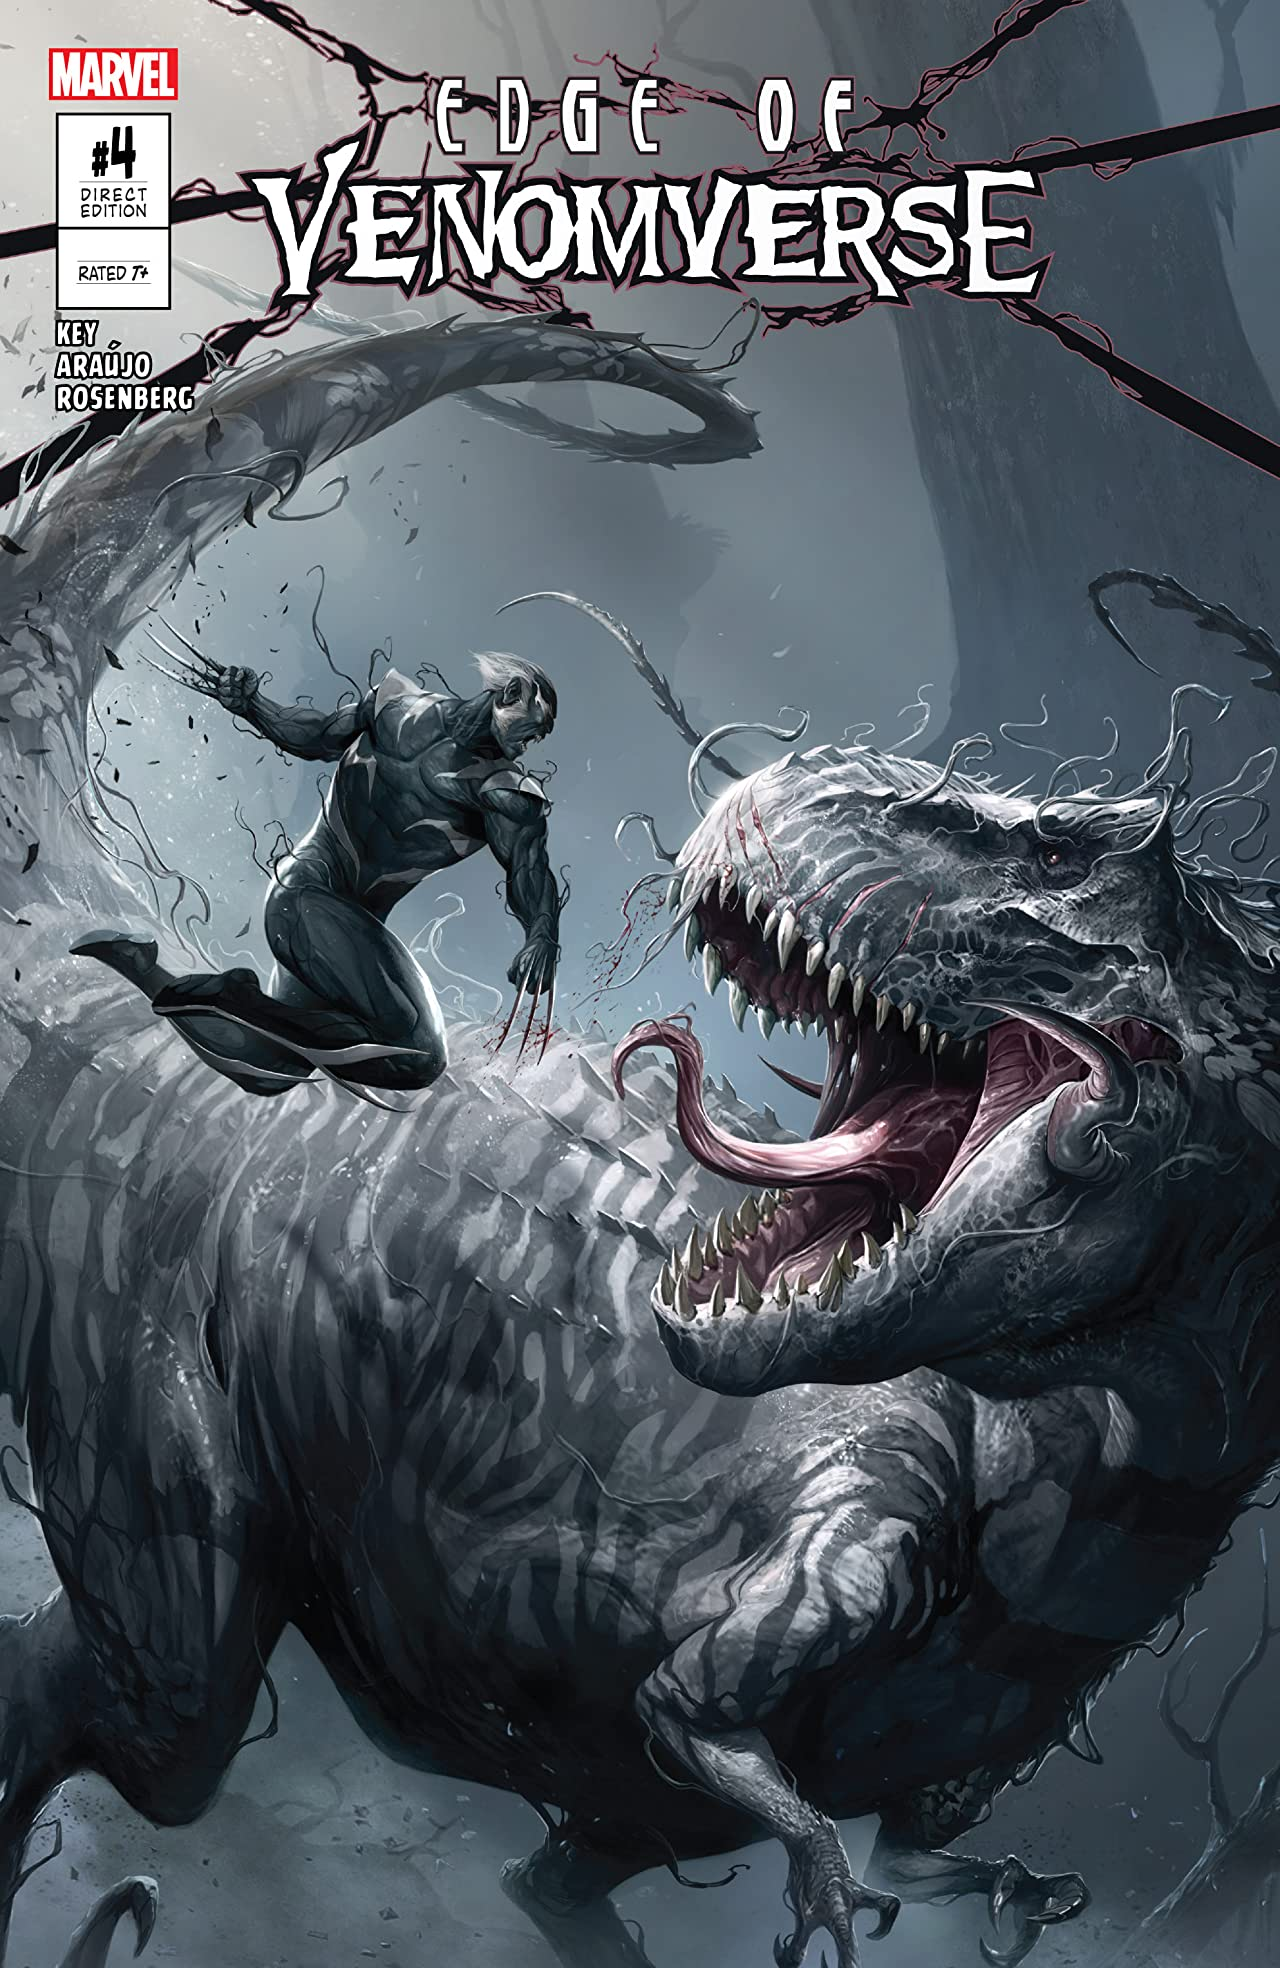 Edge of Venomverse (2017) #4 (of 5)